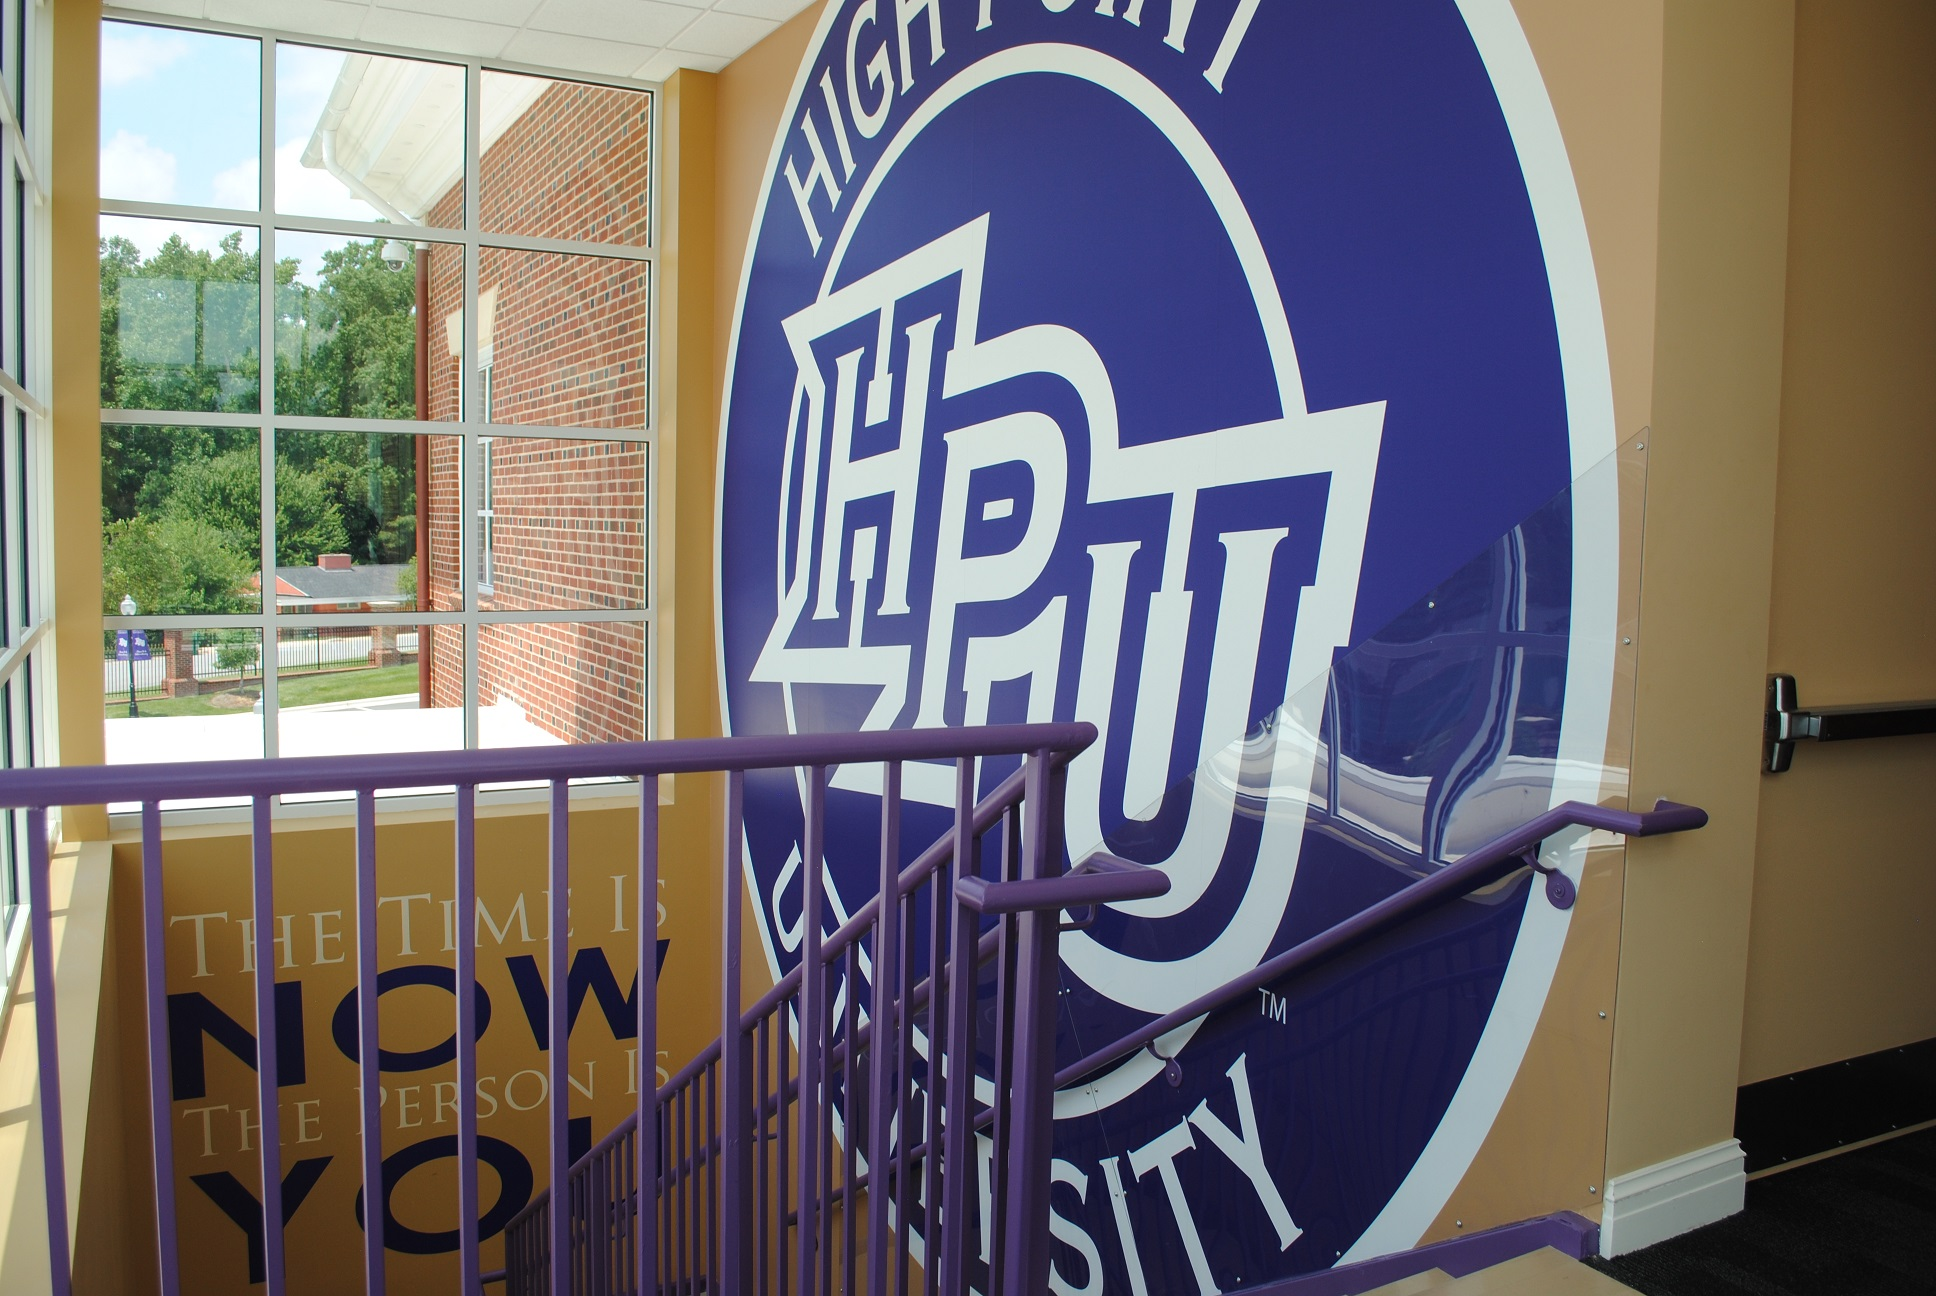 high point university logo gym interior graphic